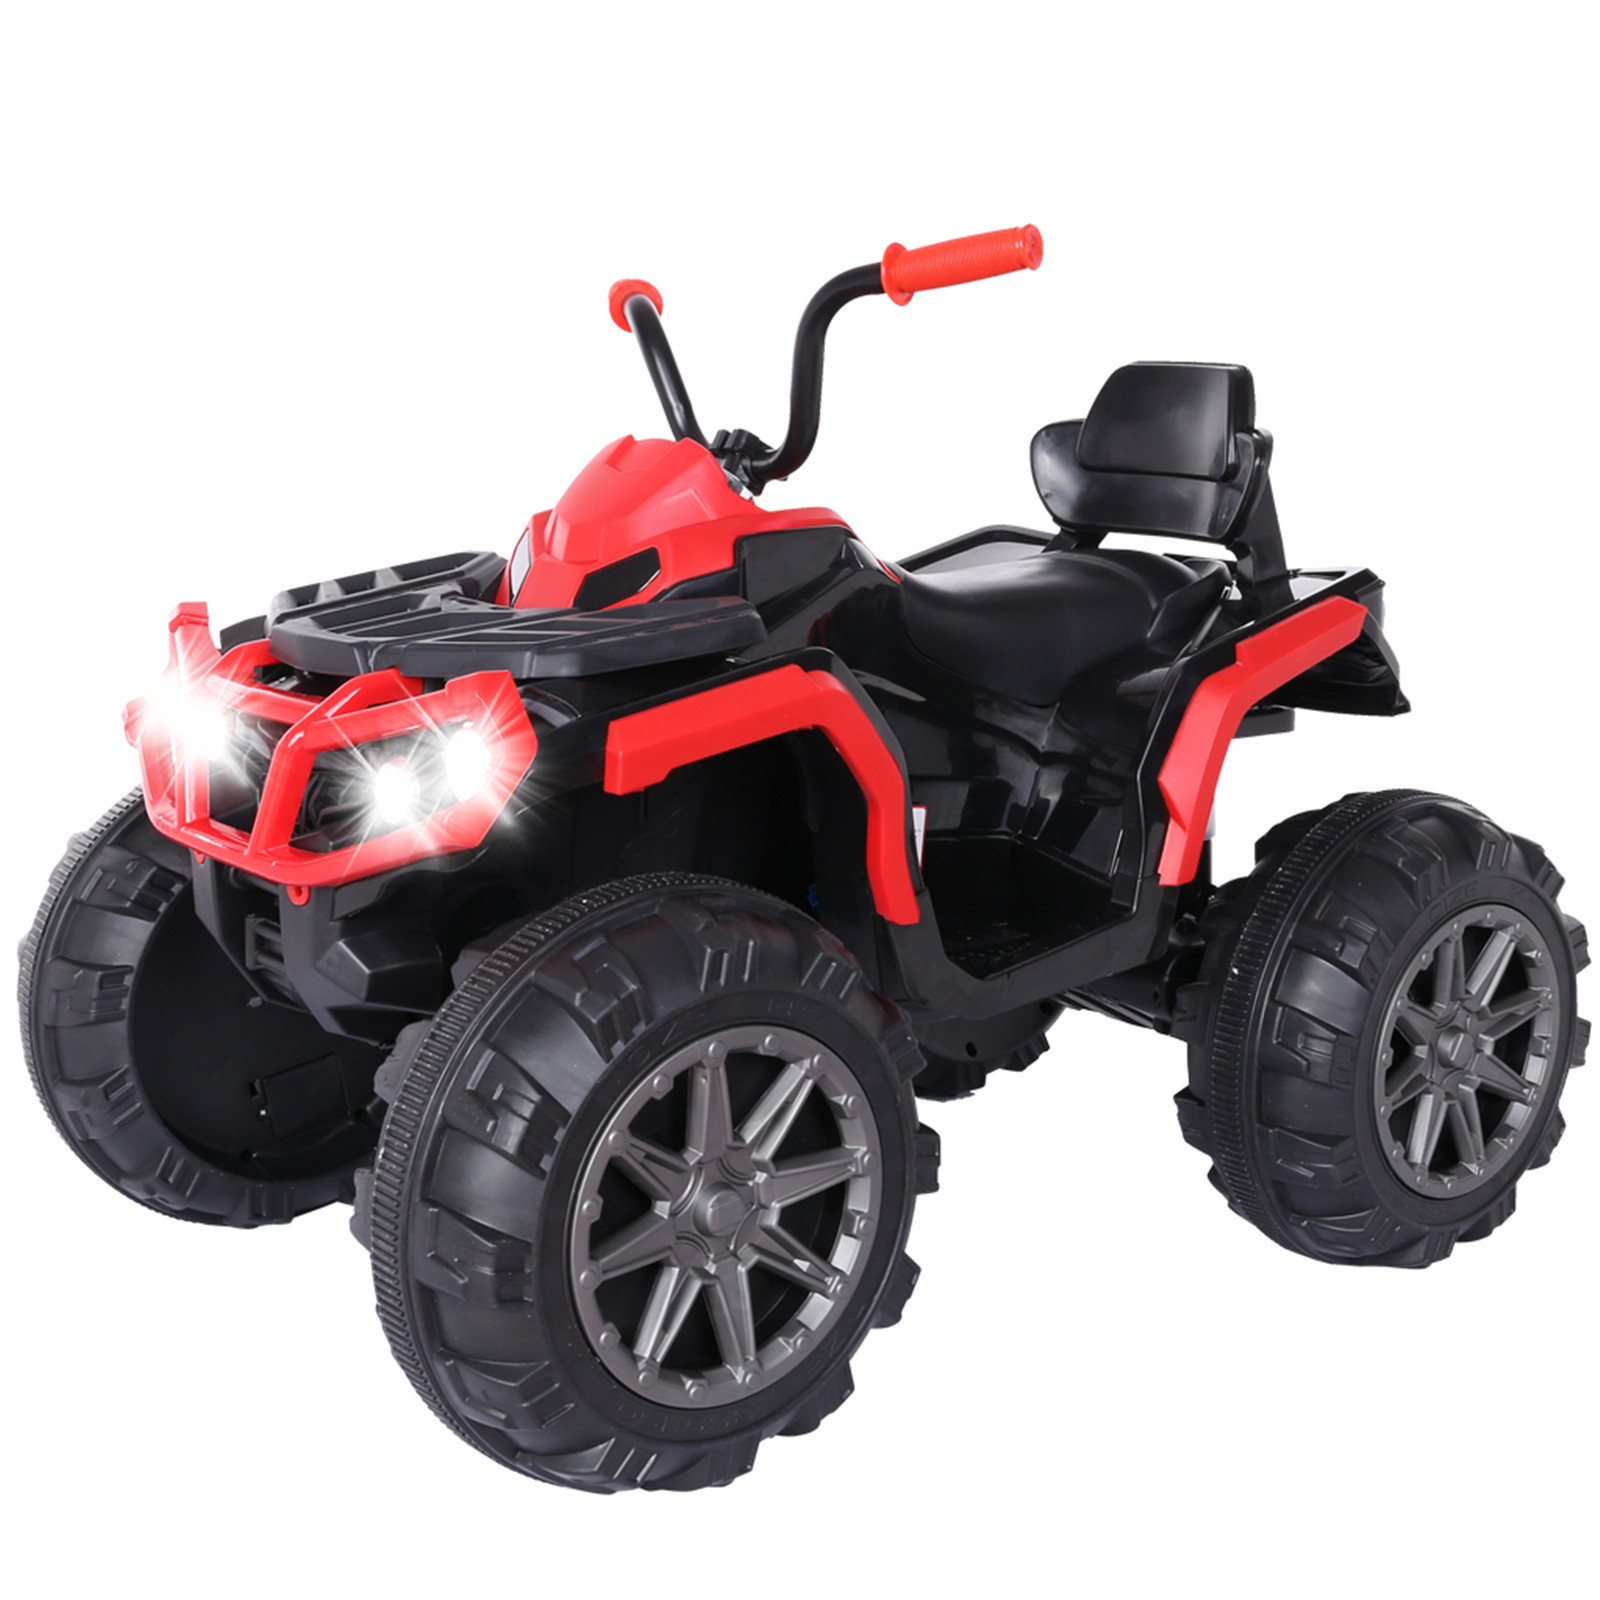 2.4G 4WD Off-road RC Car Manned Truck Dual Mode Support Ride-on Car